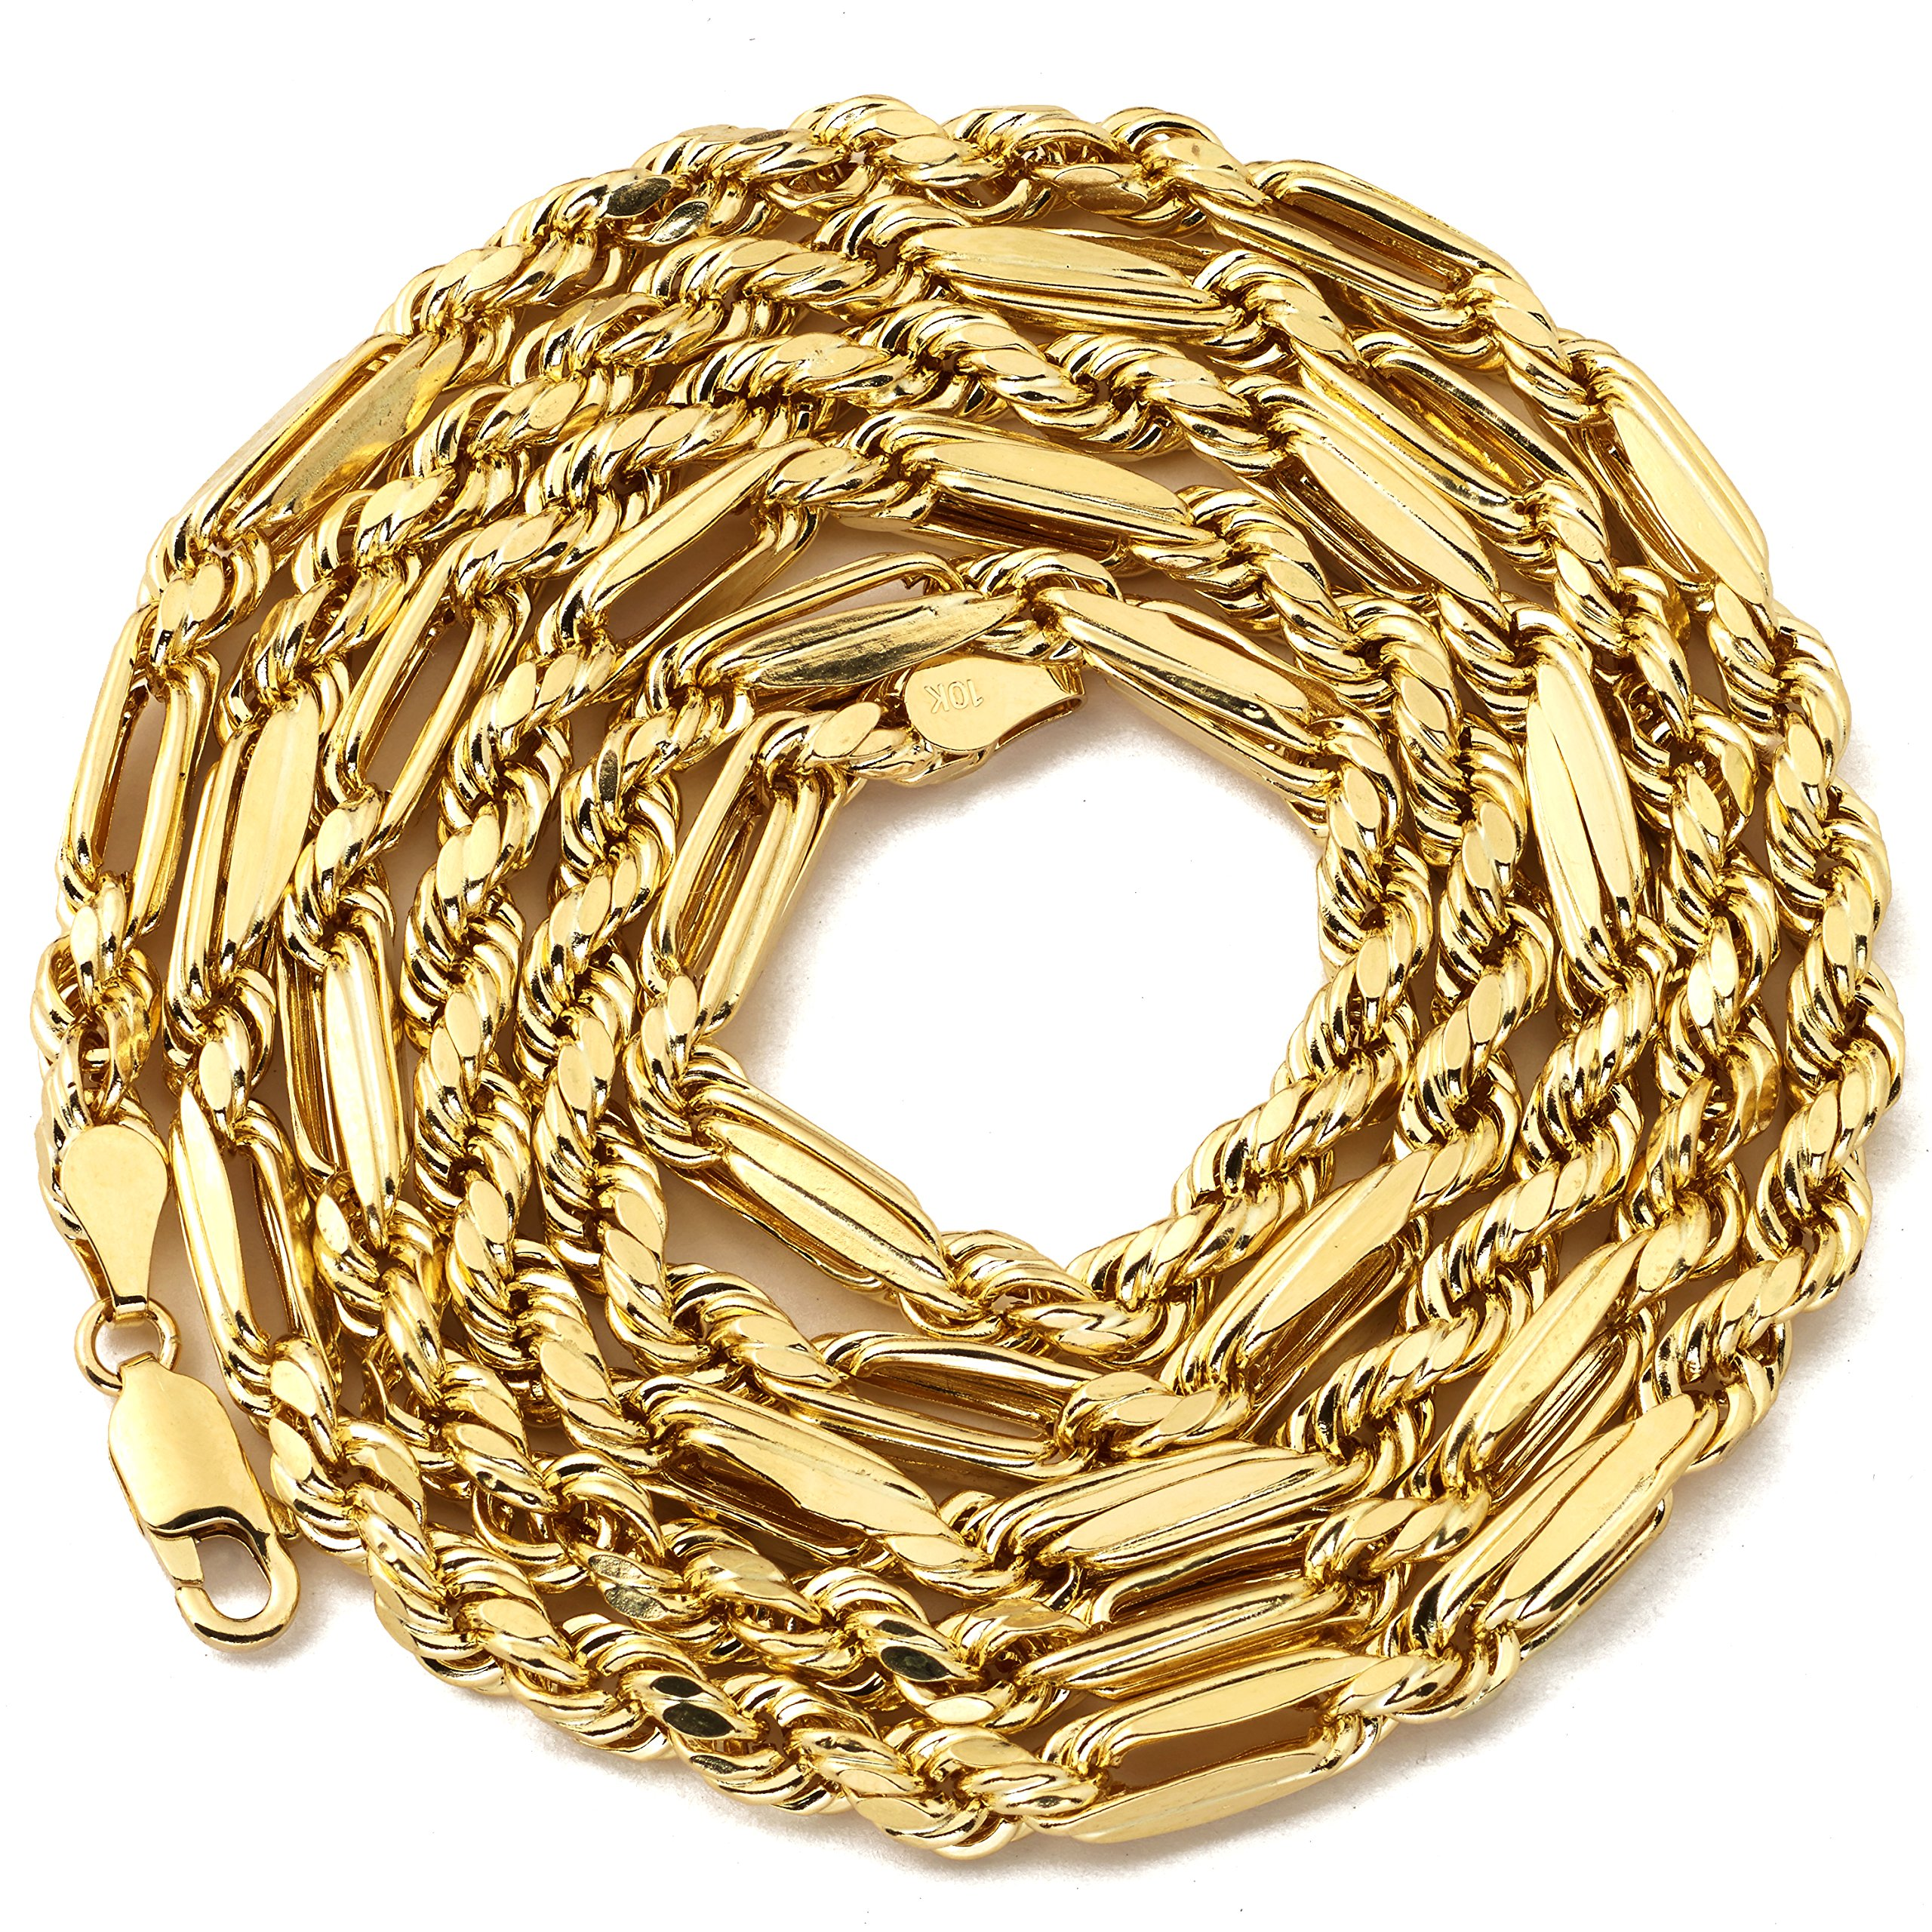 LoveBling 10K Yellow Gold 4.5mm Diamond Cut FigaRope Milano Chain Necklace with Lobster Lock (30'')